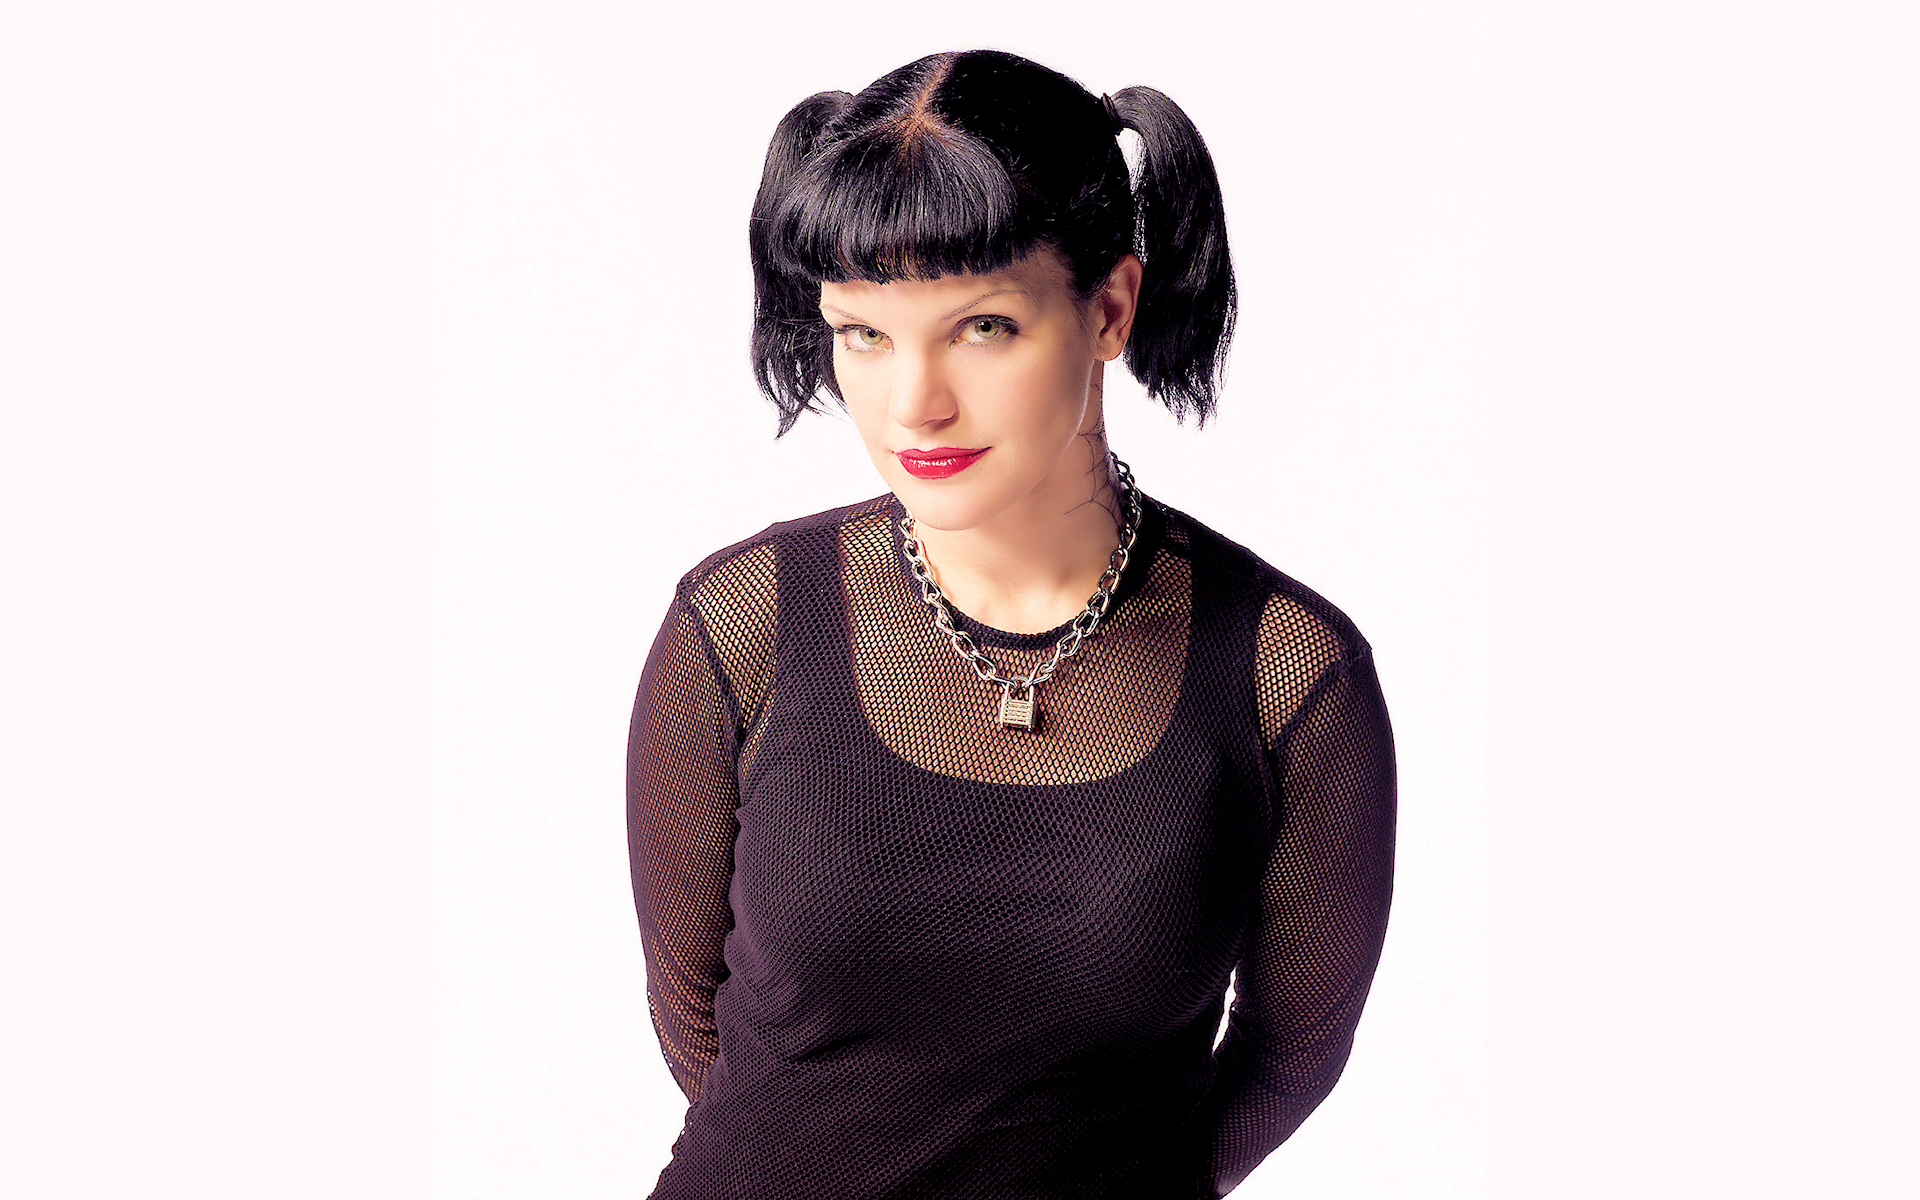 ncis girls images abby - photo #37